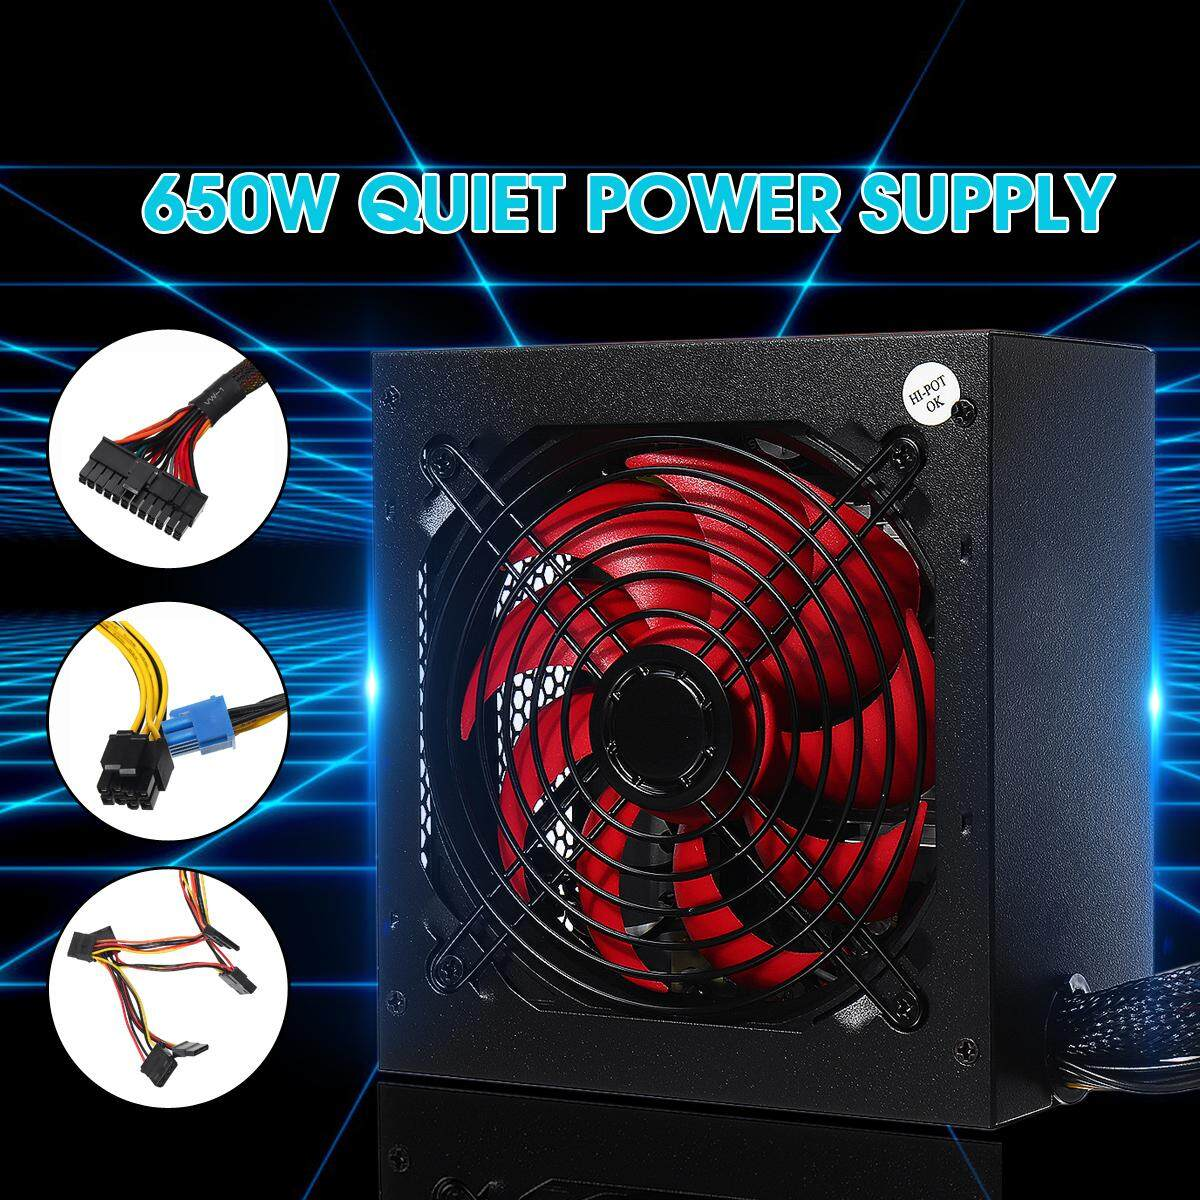 【Free Shipping + Super Deal】650W Gaming PC ATX Power Supply PFC Silent Fan 4-PIN for Desktop Computer